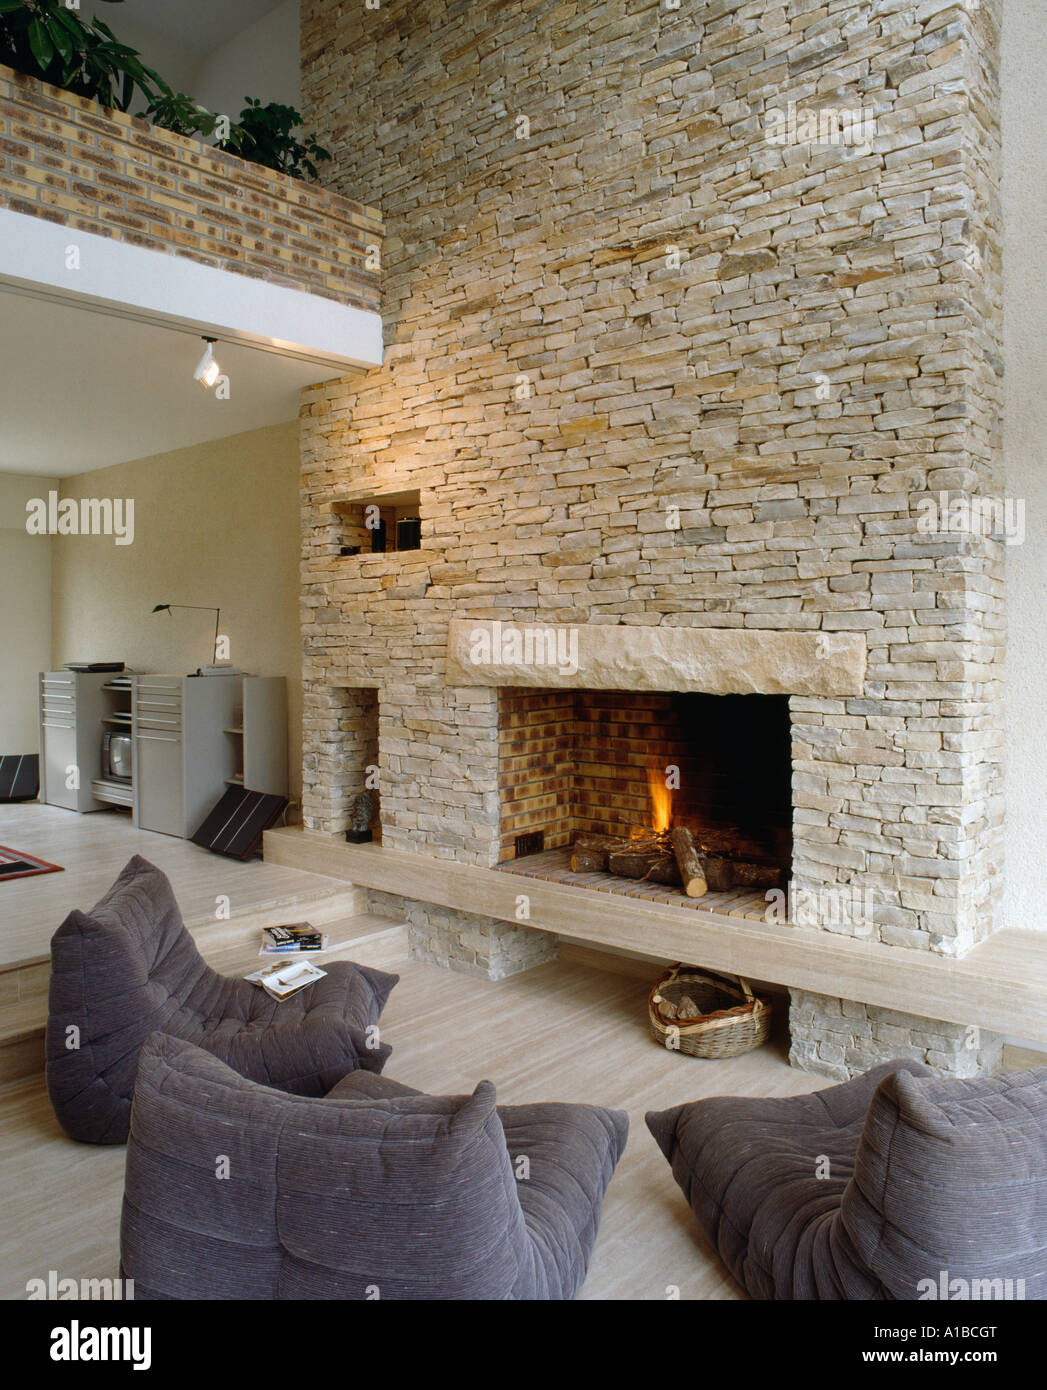 Lit Fire In Fireplace In Stone Wall Of Barn Conversion